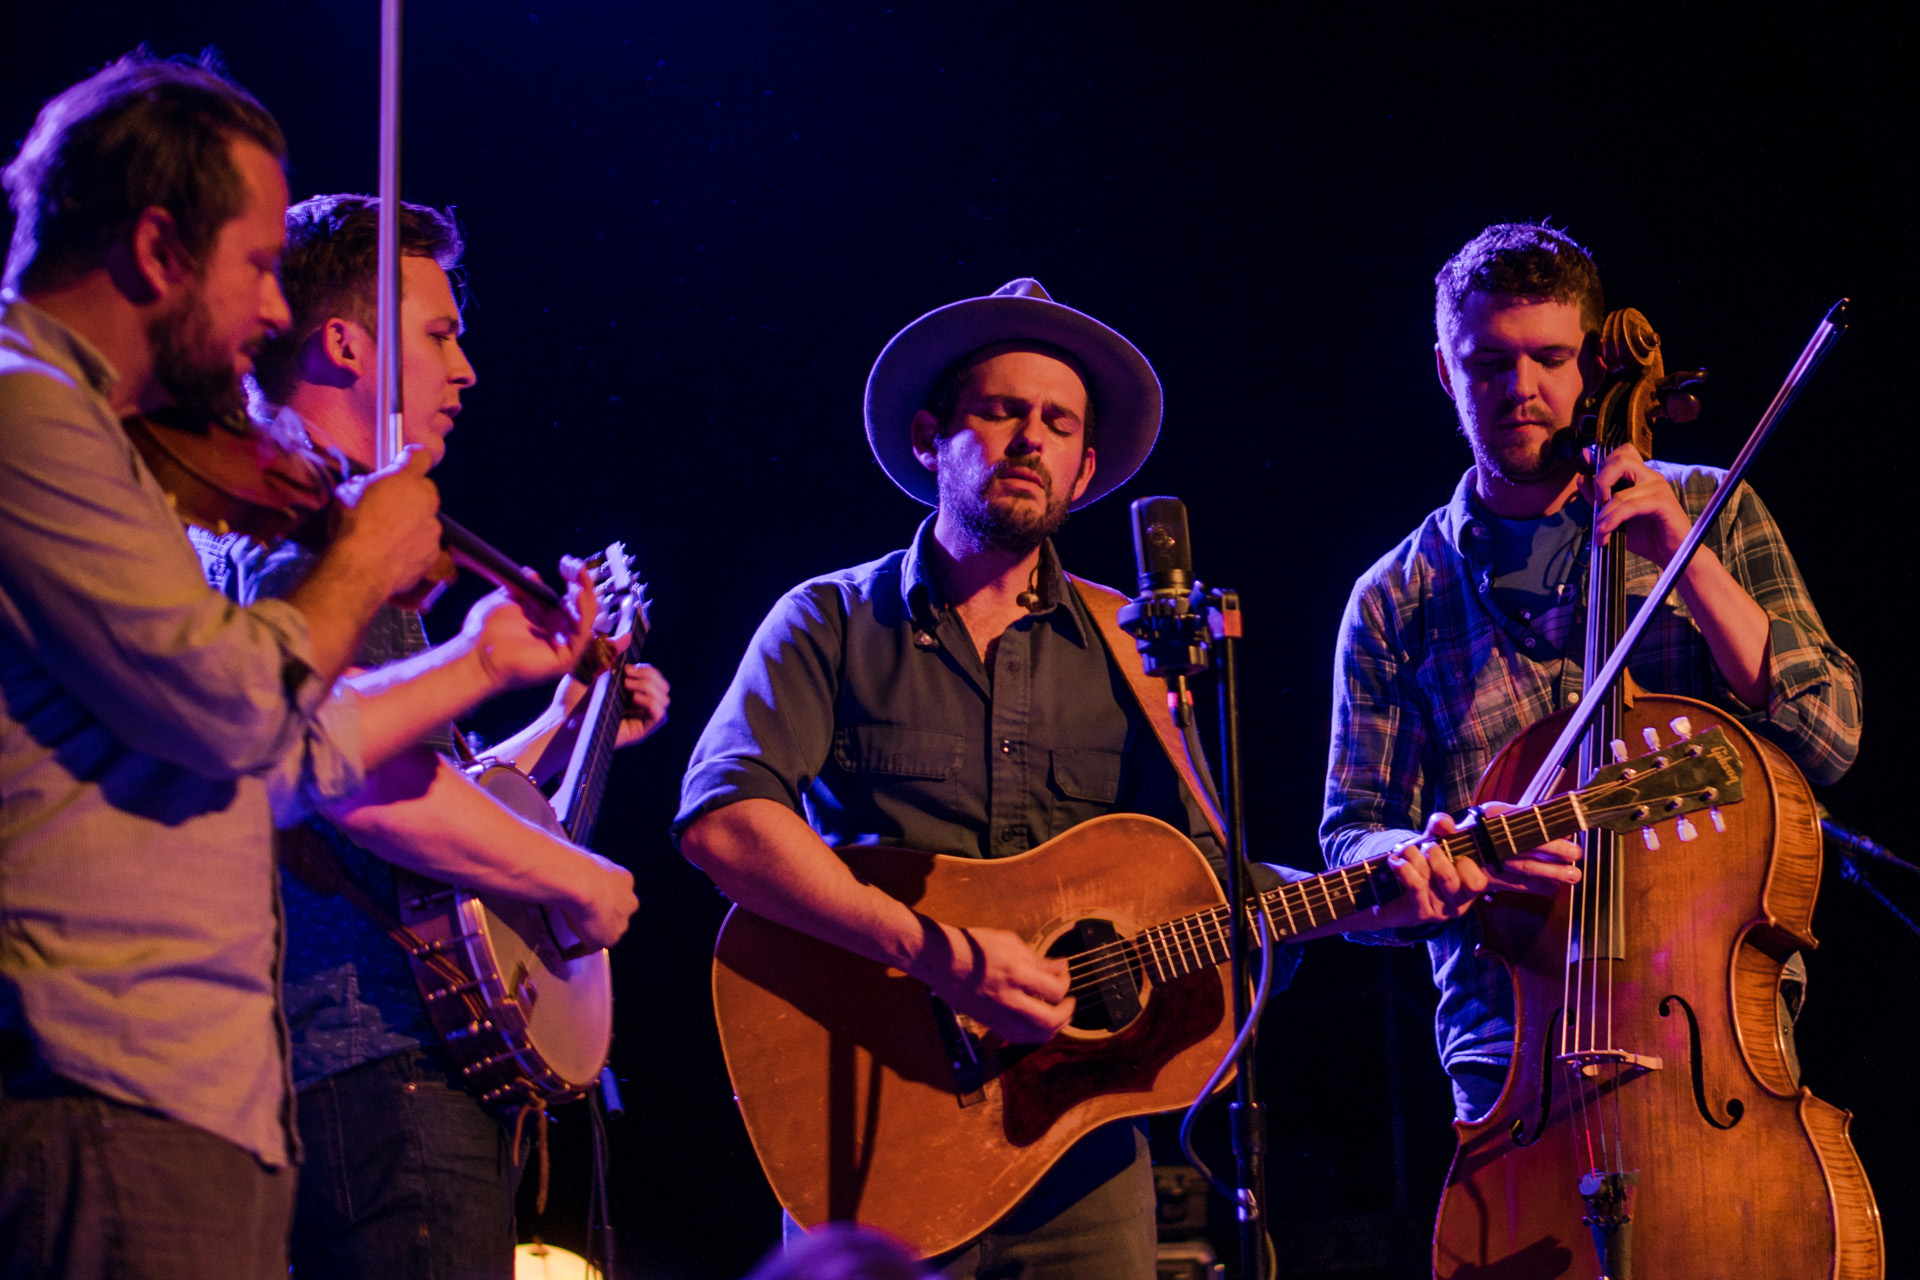 Gregory Alan Isakov at Red Rocks Amphitheater